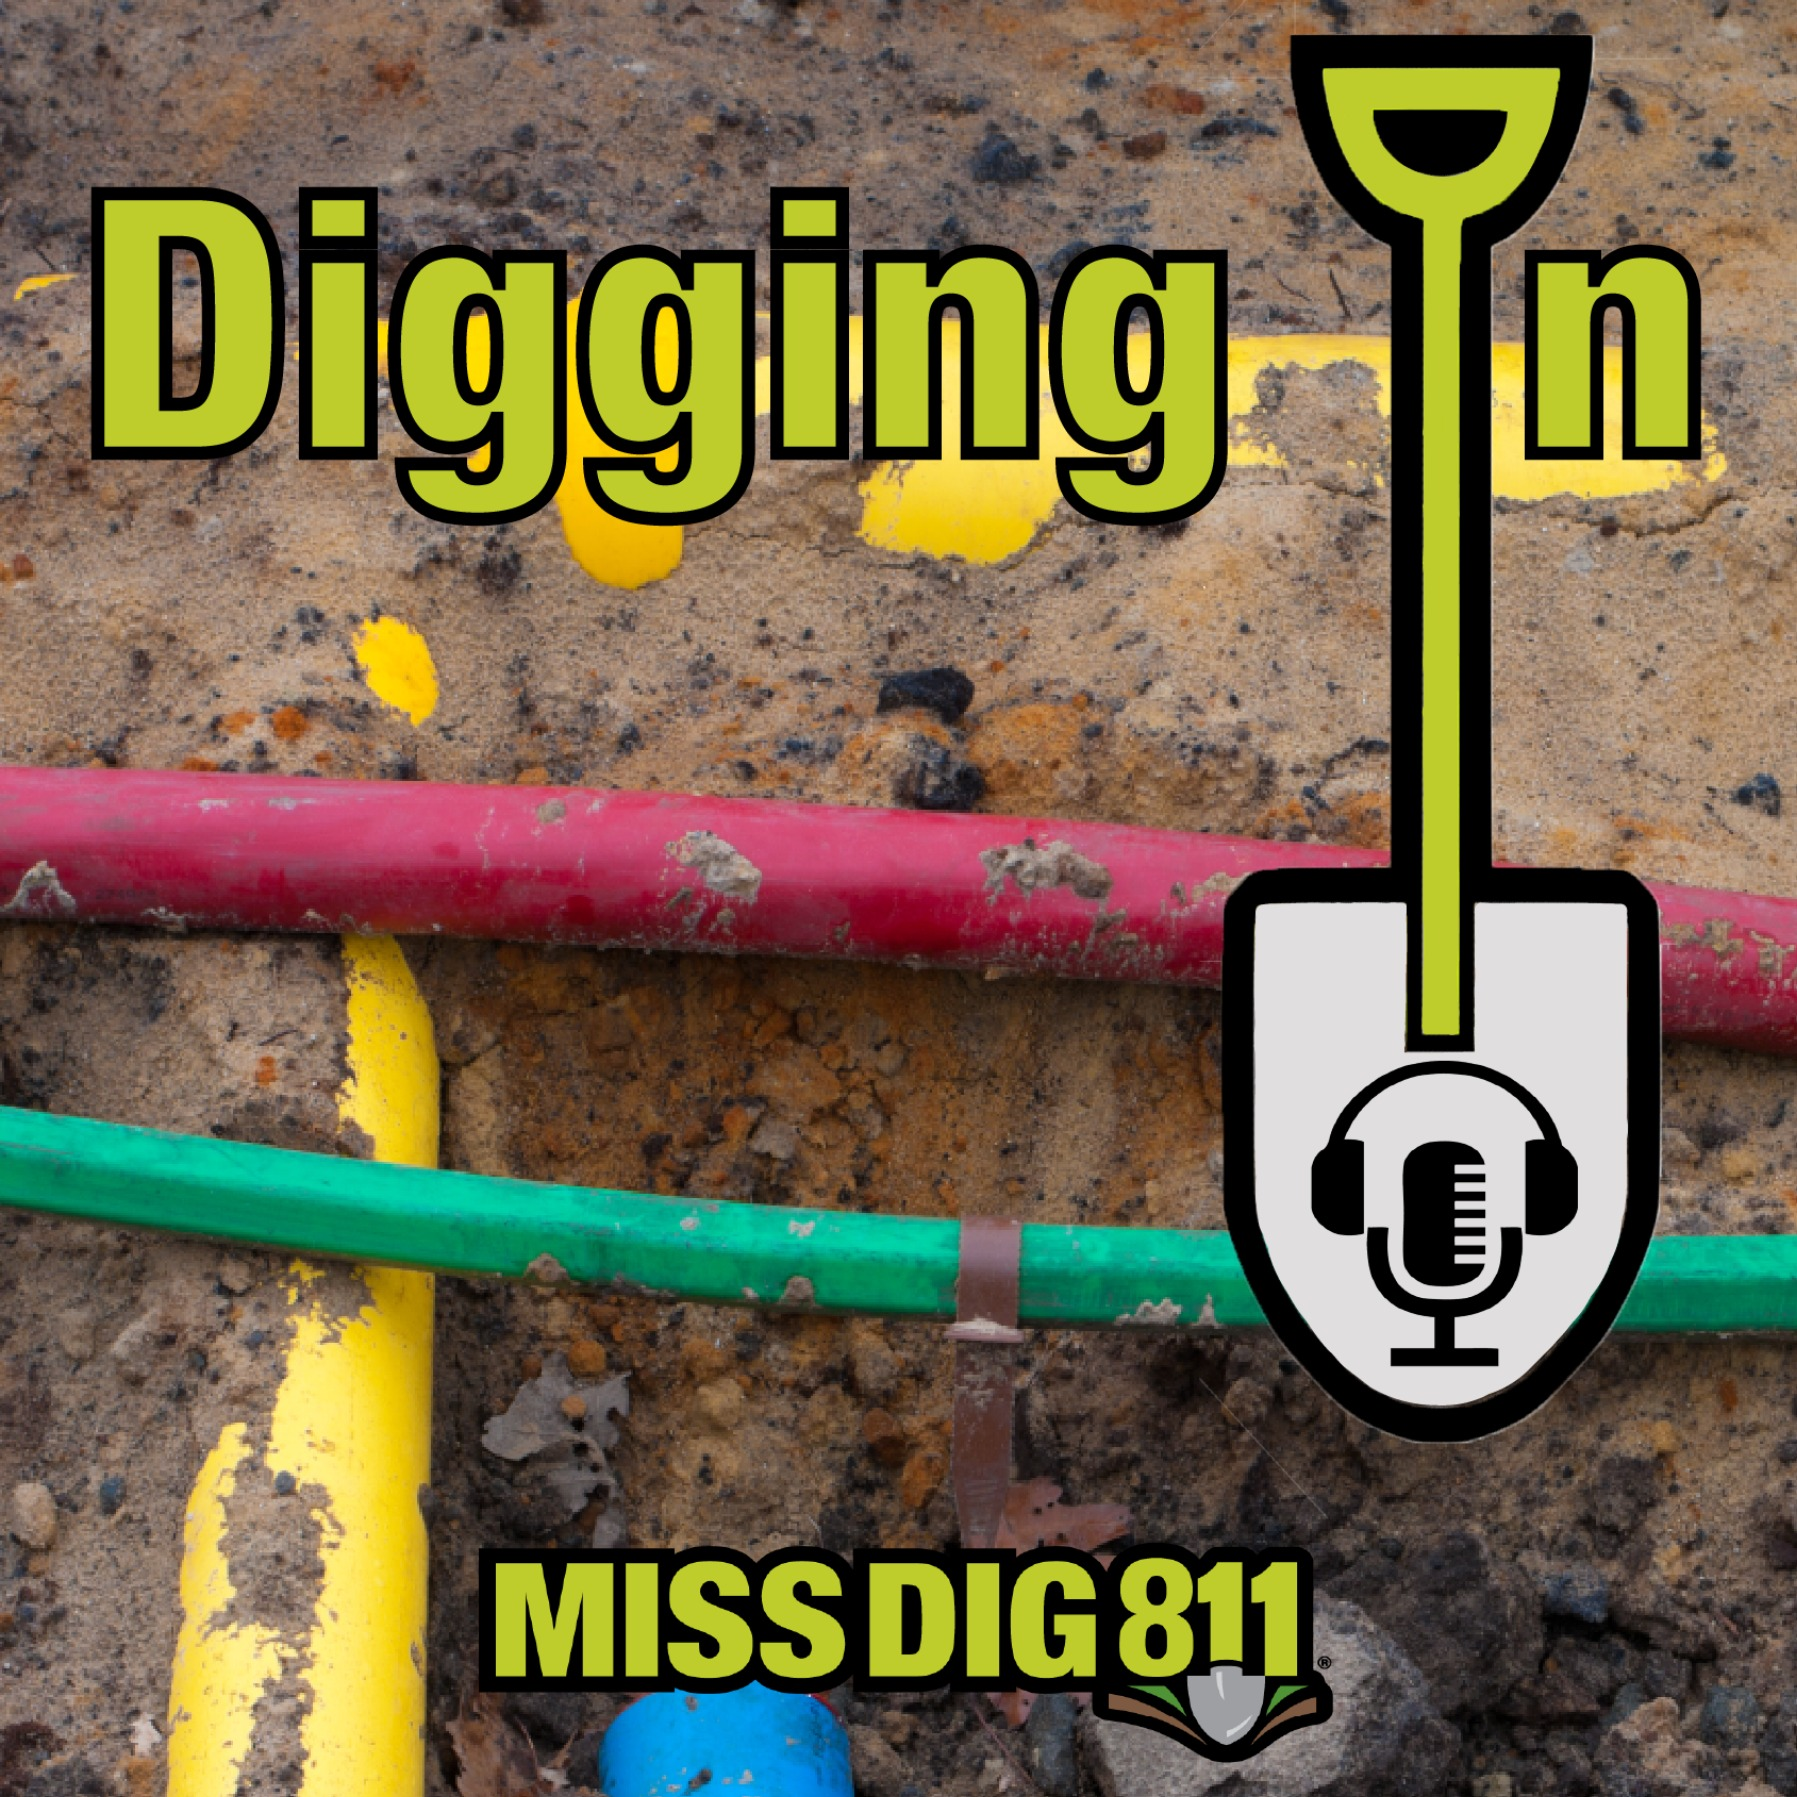 Episode 8 Remote Ticket Entry Digging In Miss dig system, inc.'s best boards. digging in simplecast